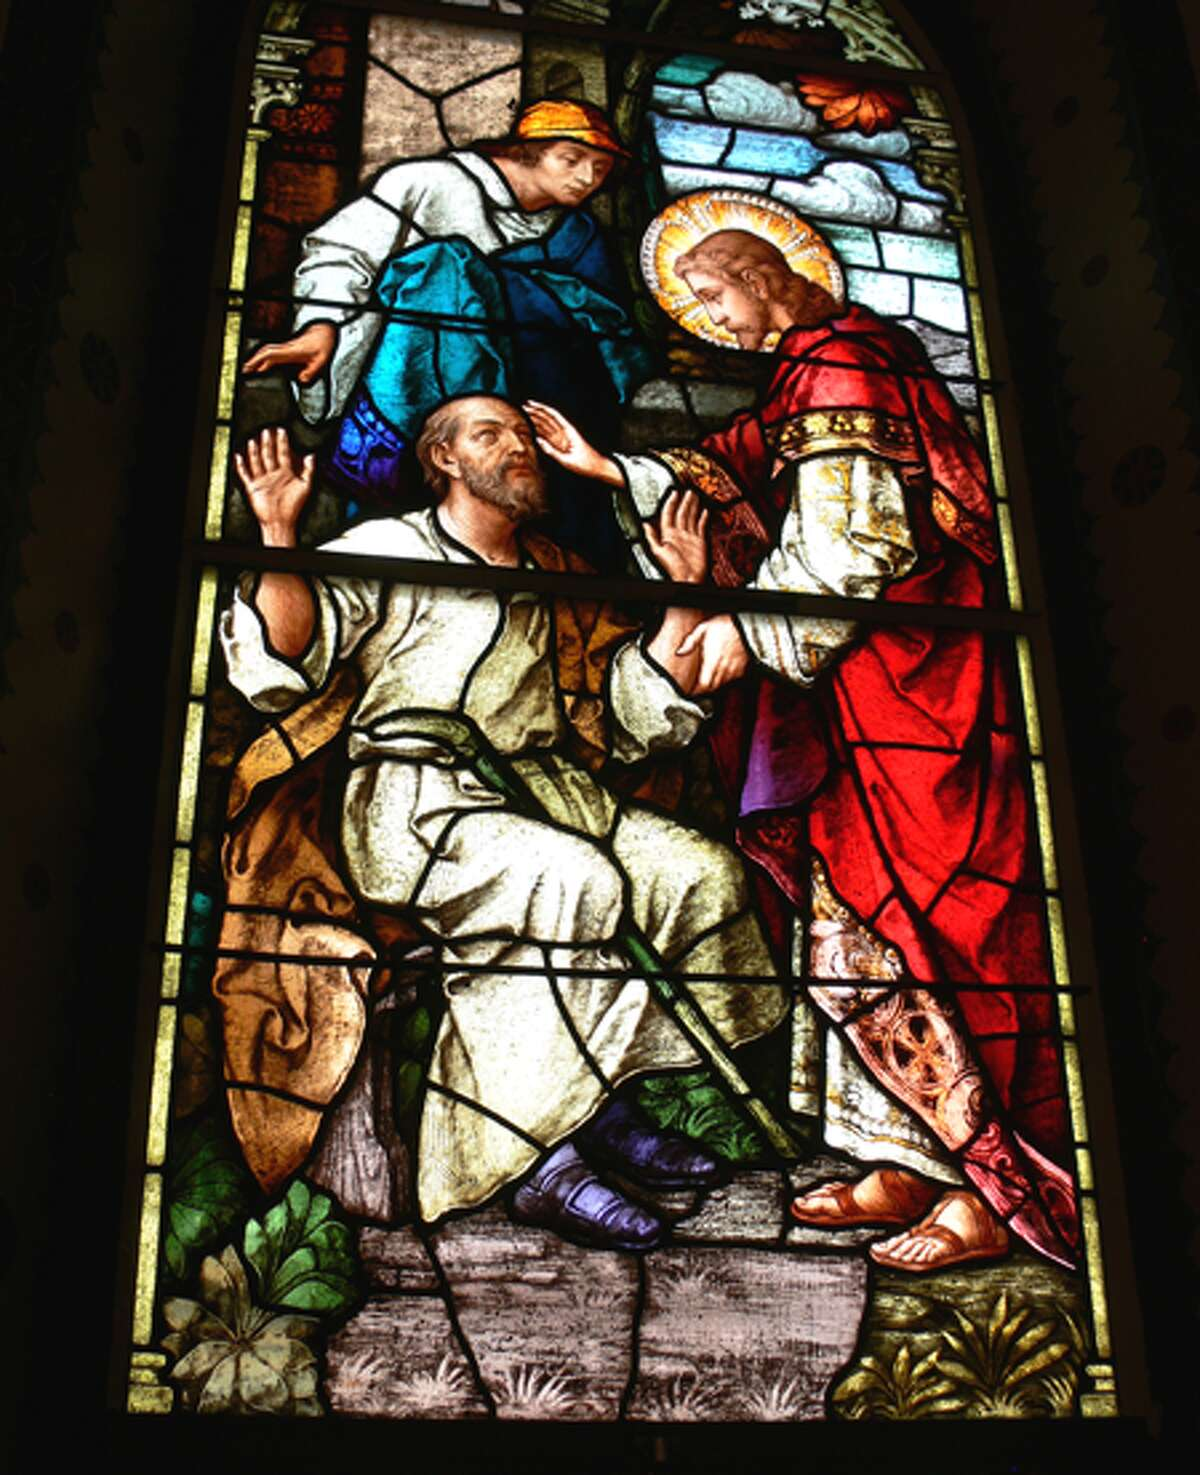 The stained glass windows inside the Roman Catholic church were brought to Shelton from Austria.